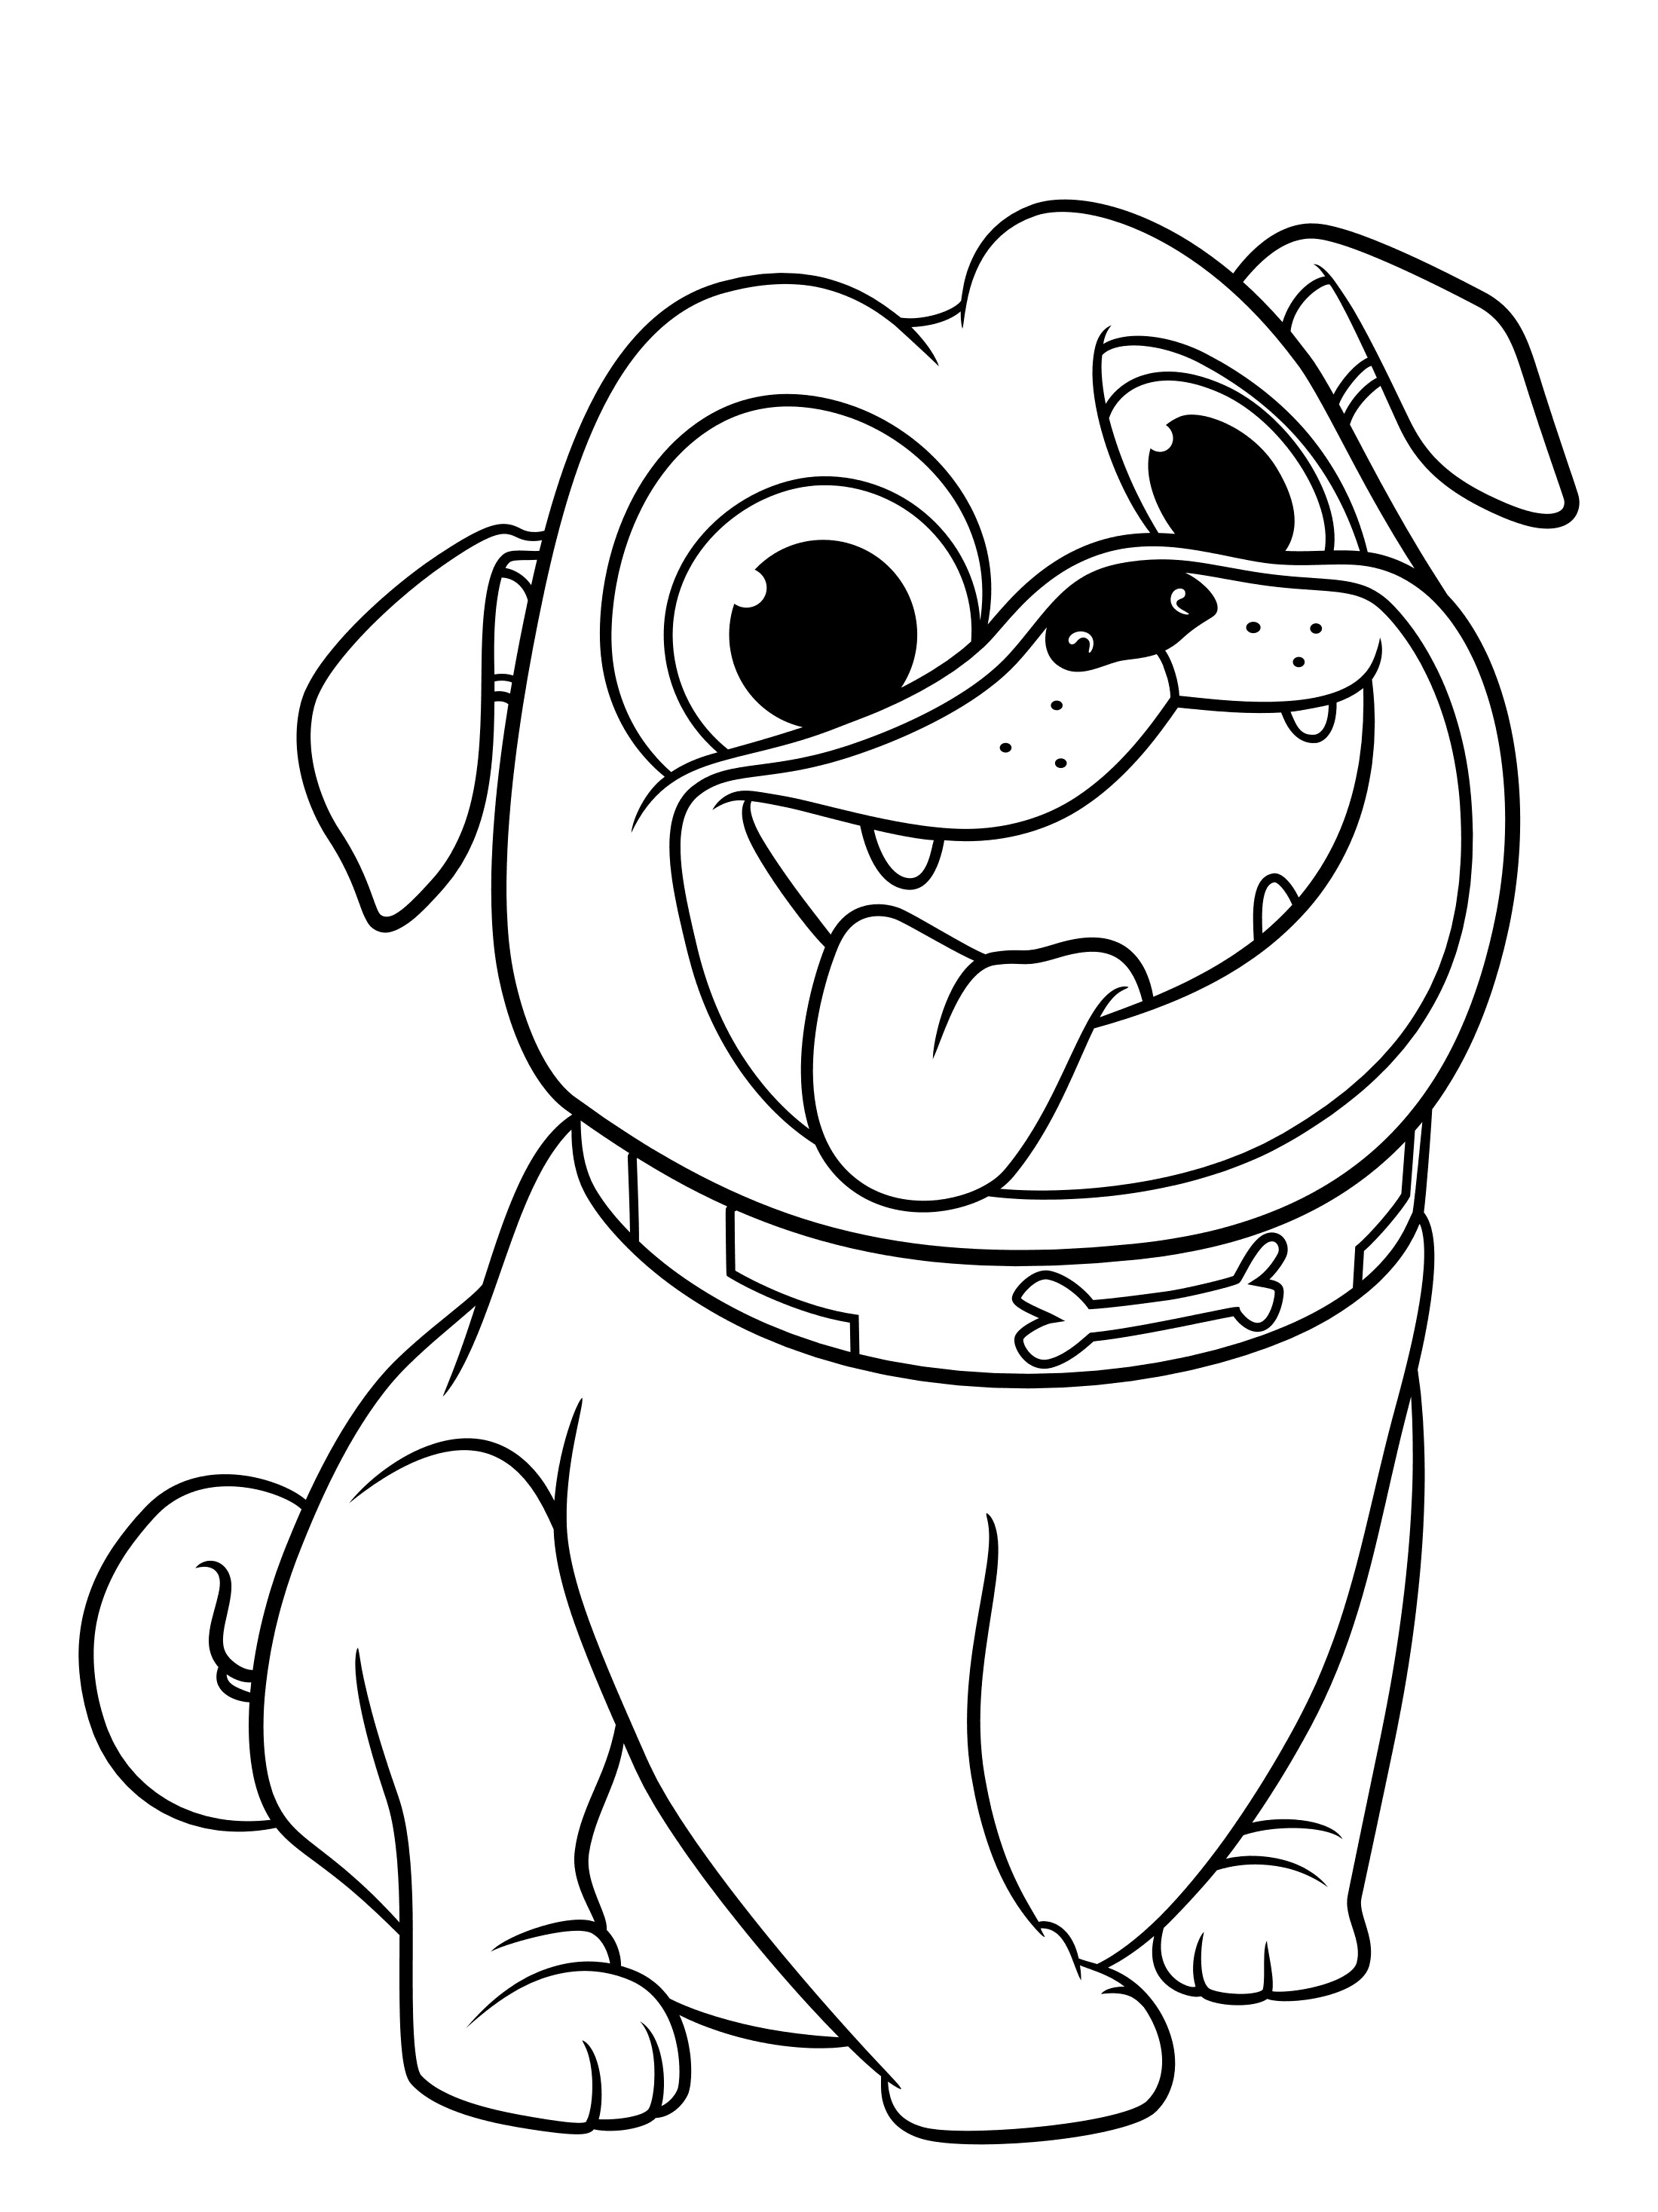 coloring picture of puppy puppy coloring pages best coloring pages for kids picture puppy coloring of